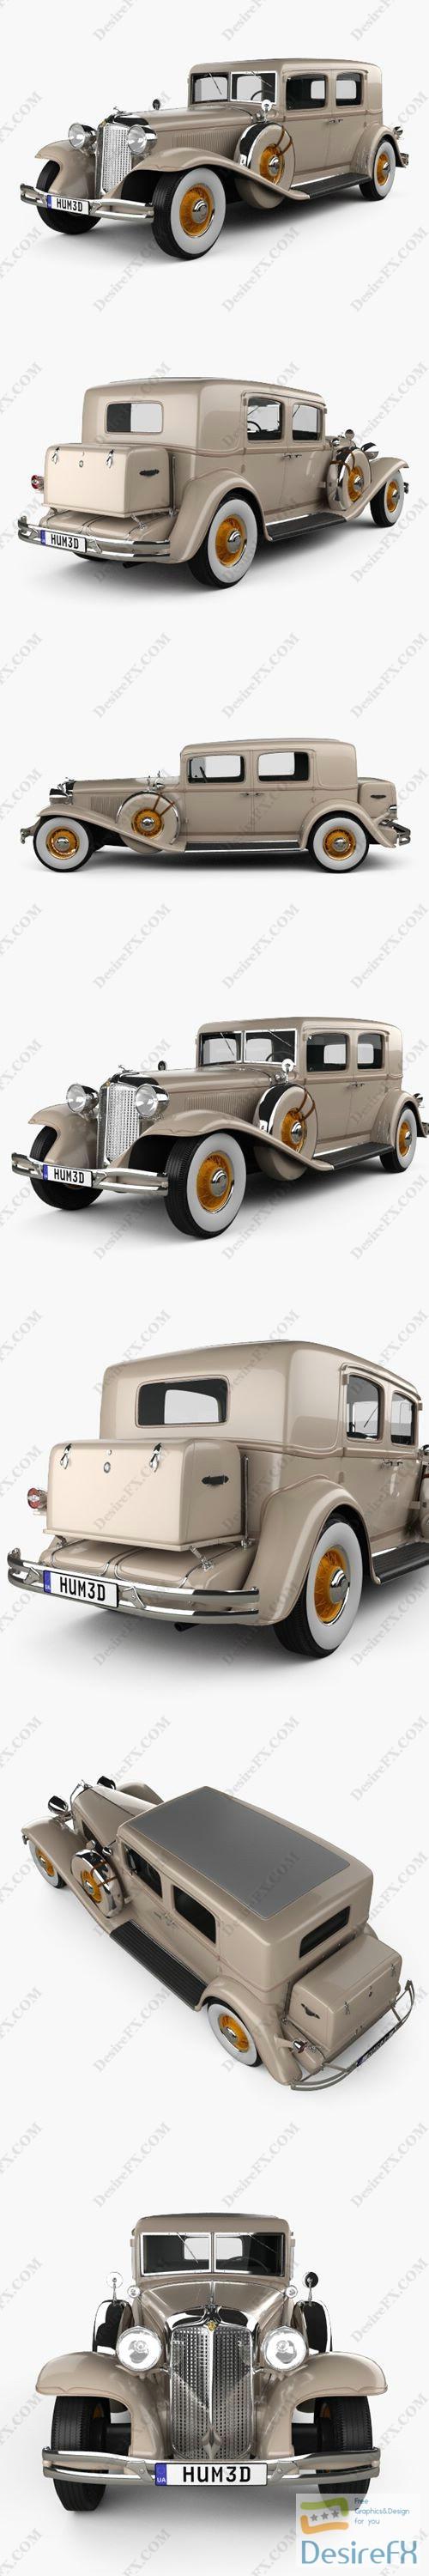 3d-models - Chrysler Imperial Close Coupled Sedan 1931 3D Model